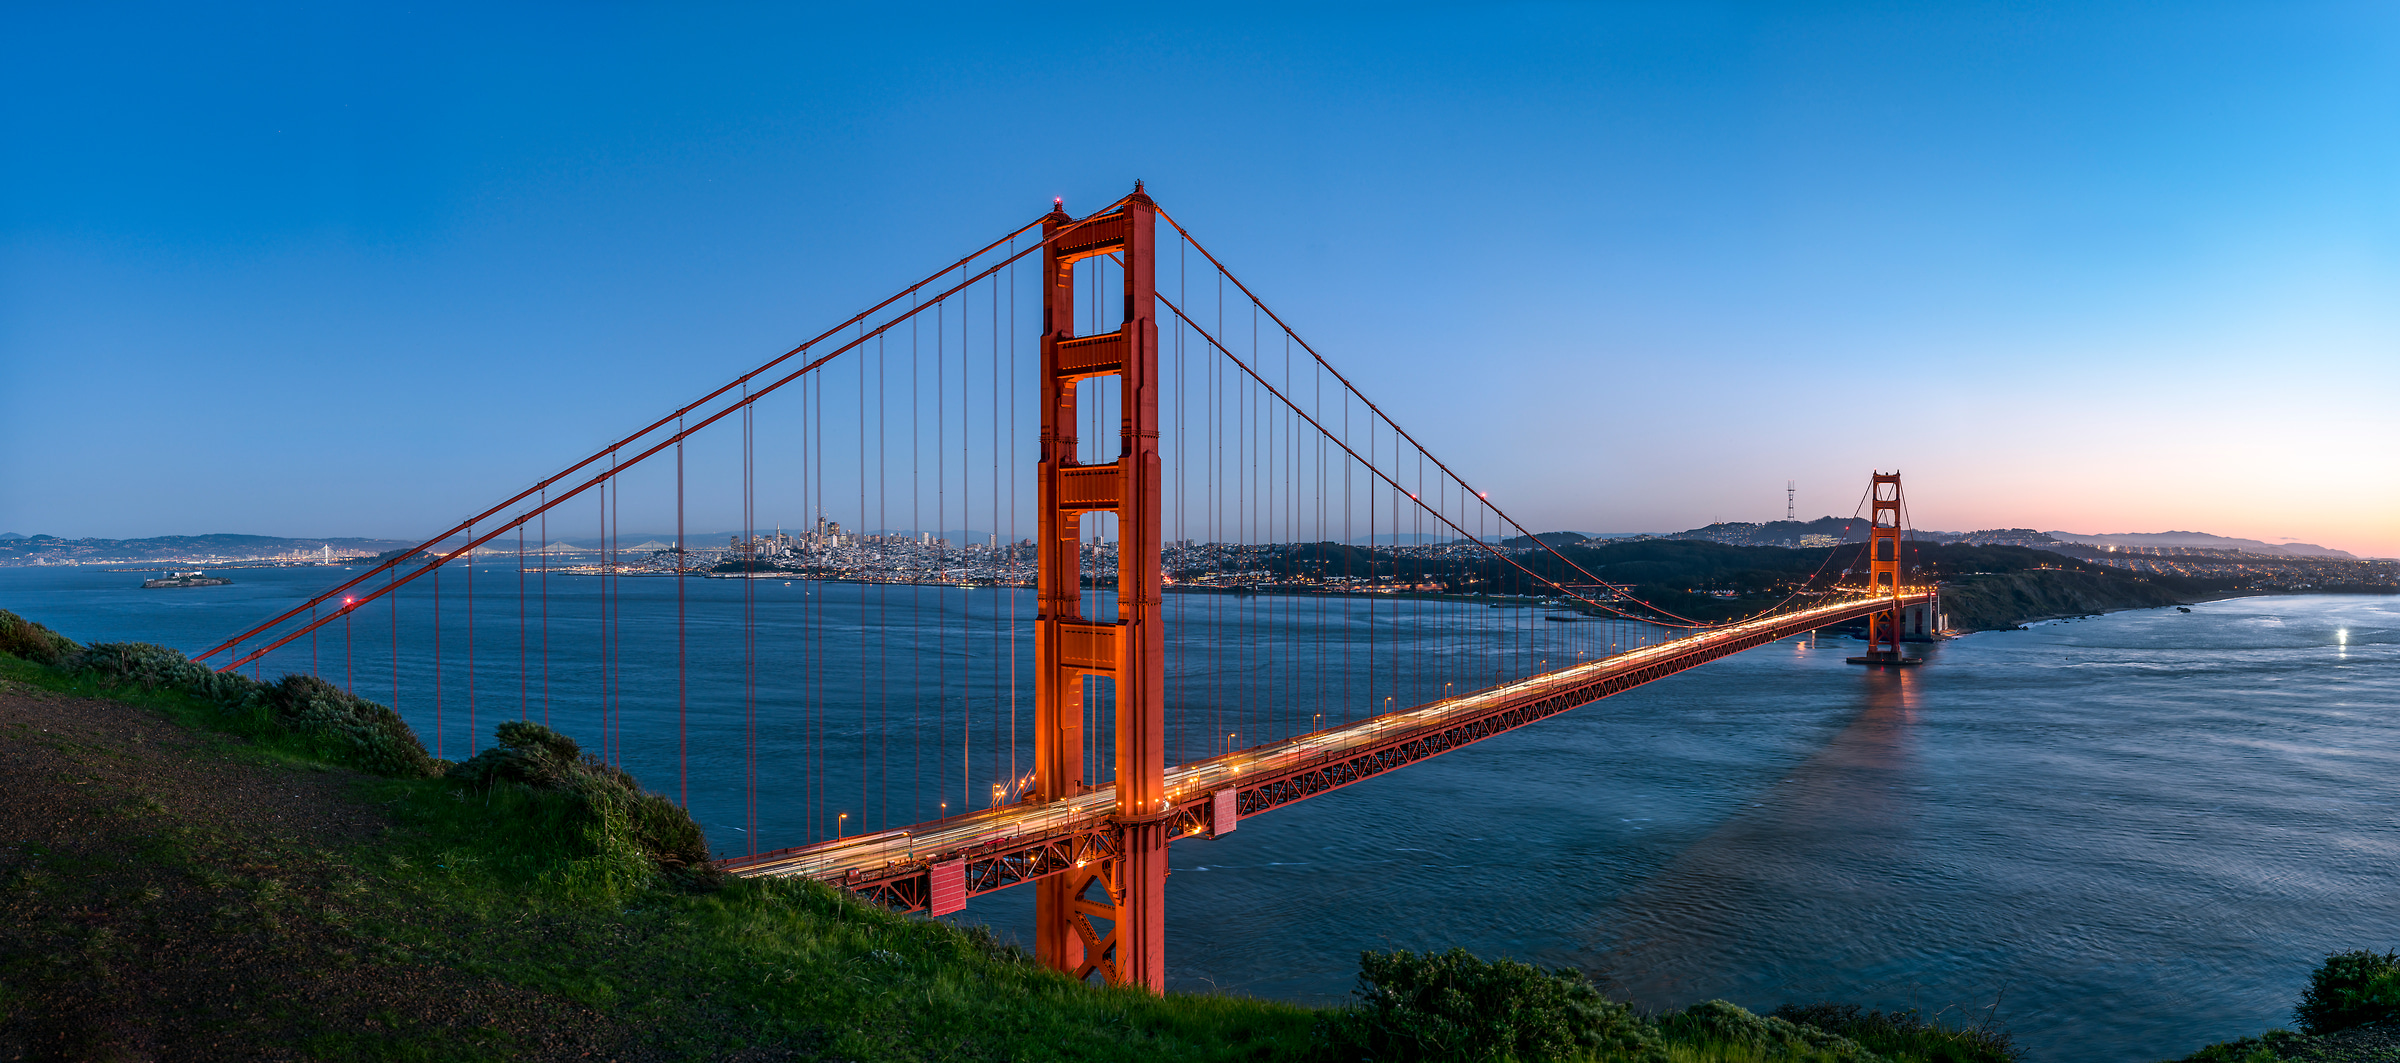 334 megapixels! A very high resolution, large-format VAST photo print of the Golden Gate Bridge, San Francisco, and the San Francisco Bay; cityscape fine art photo created by Justin Katz from Battery Spencer in Sausalito, California